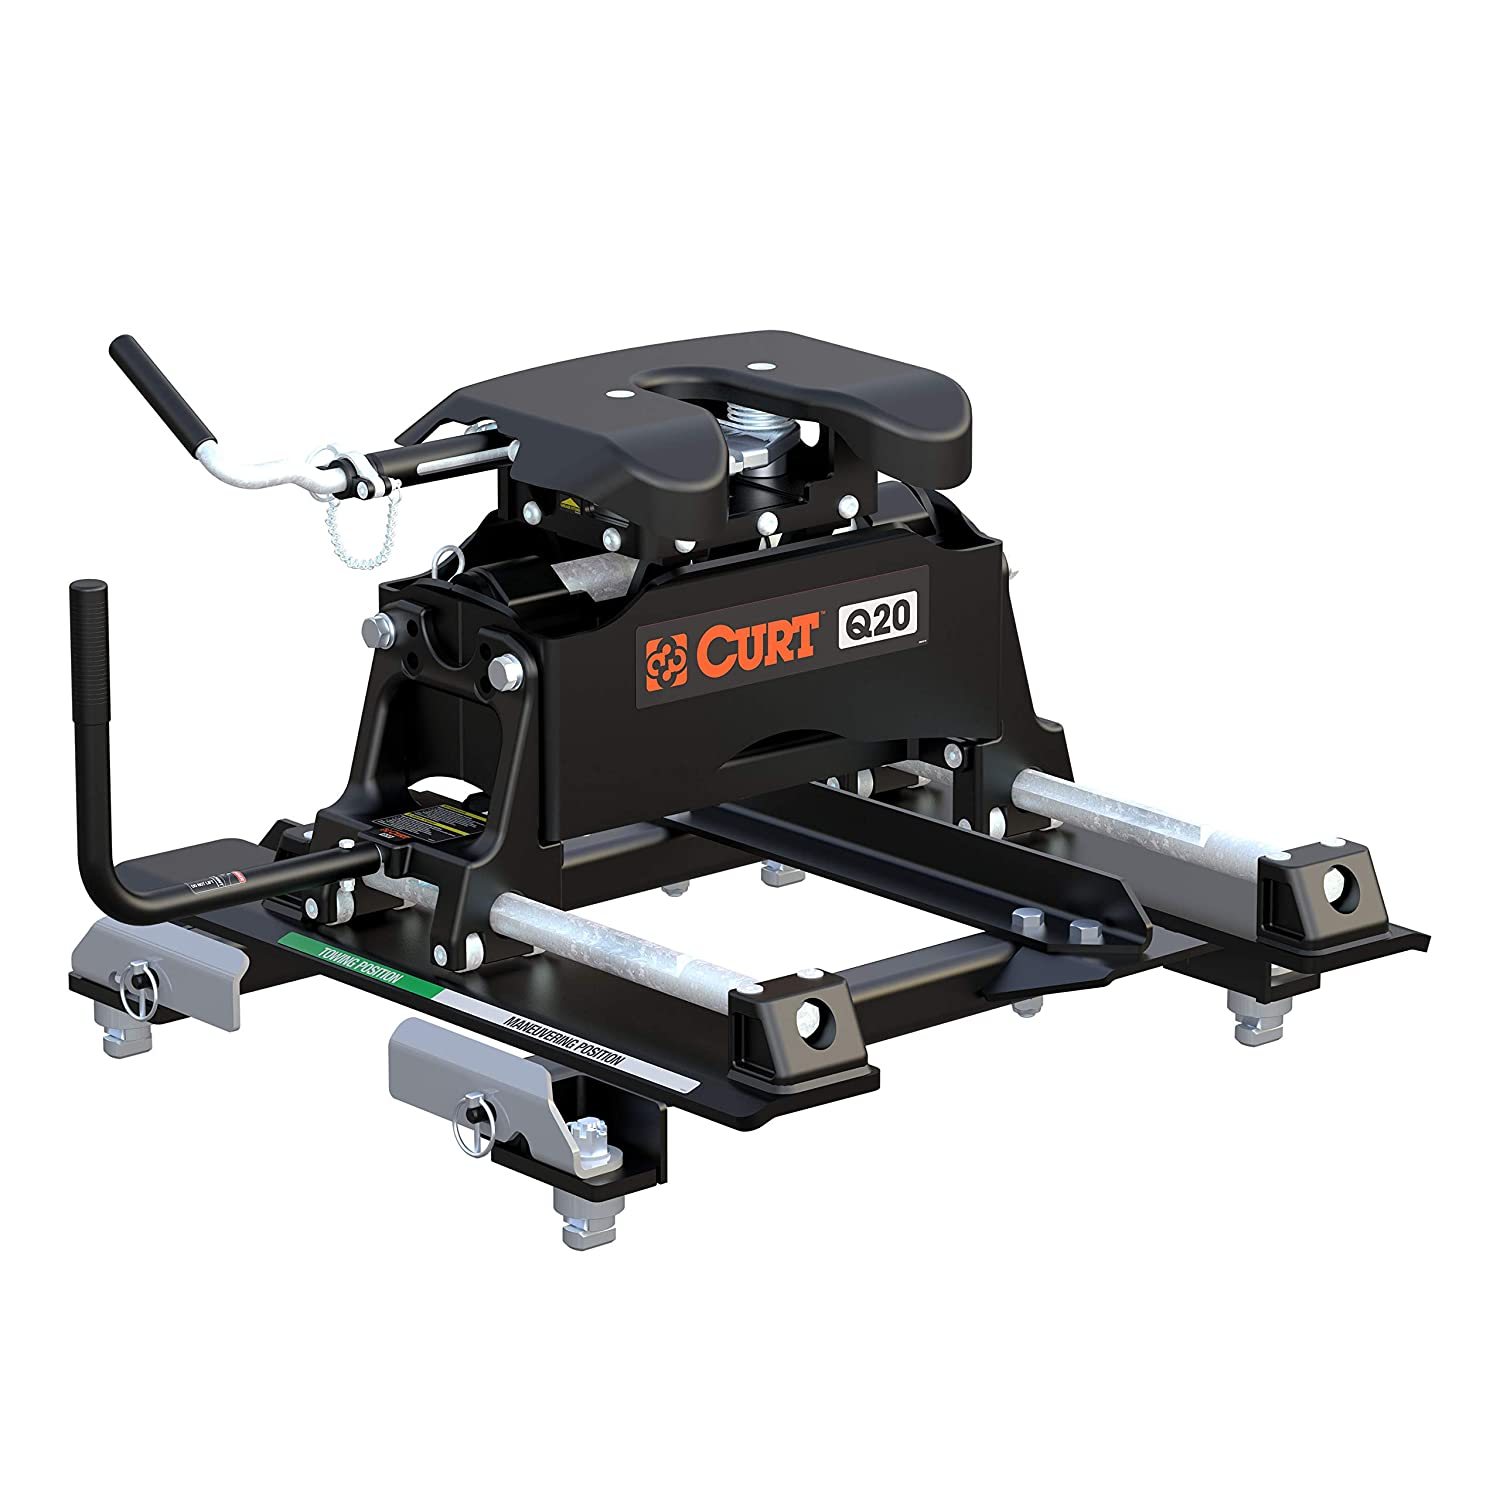 CURT 16671 Q20 5th Wheel Hitch with Roller and GM Puck System Adapter for Short Bed Trucks 20,000 lbs GTW